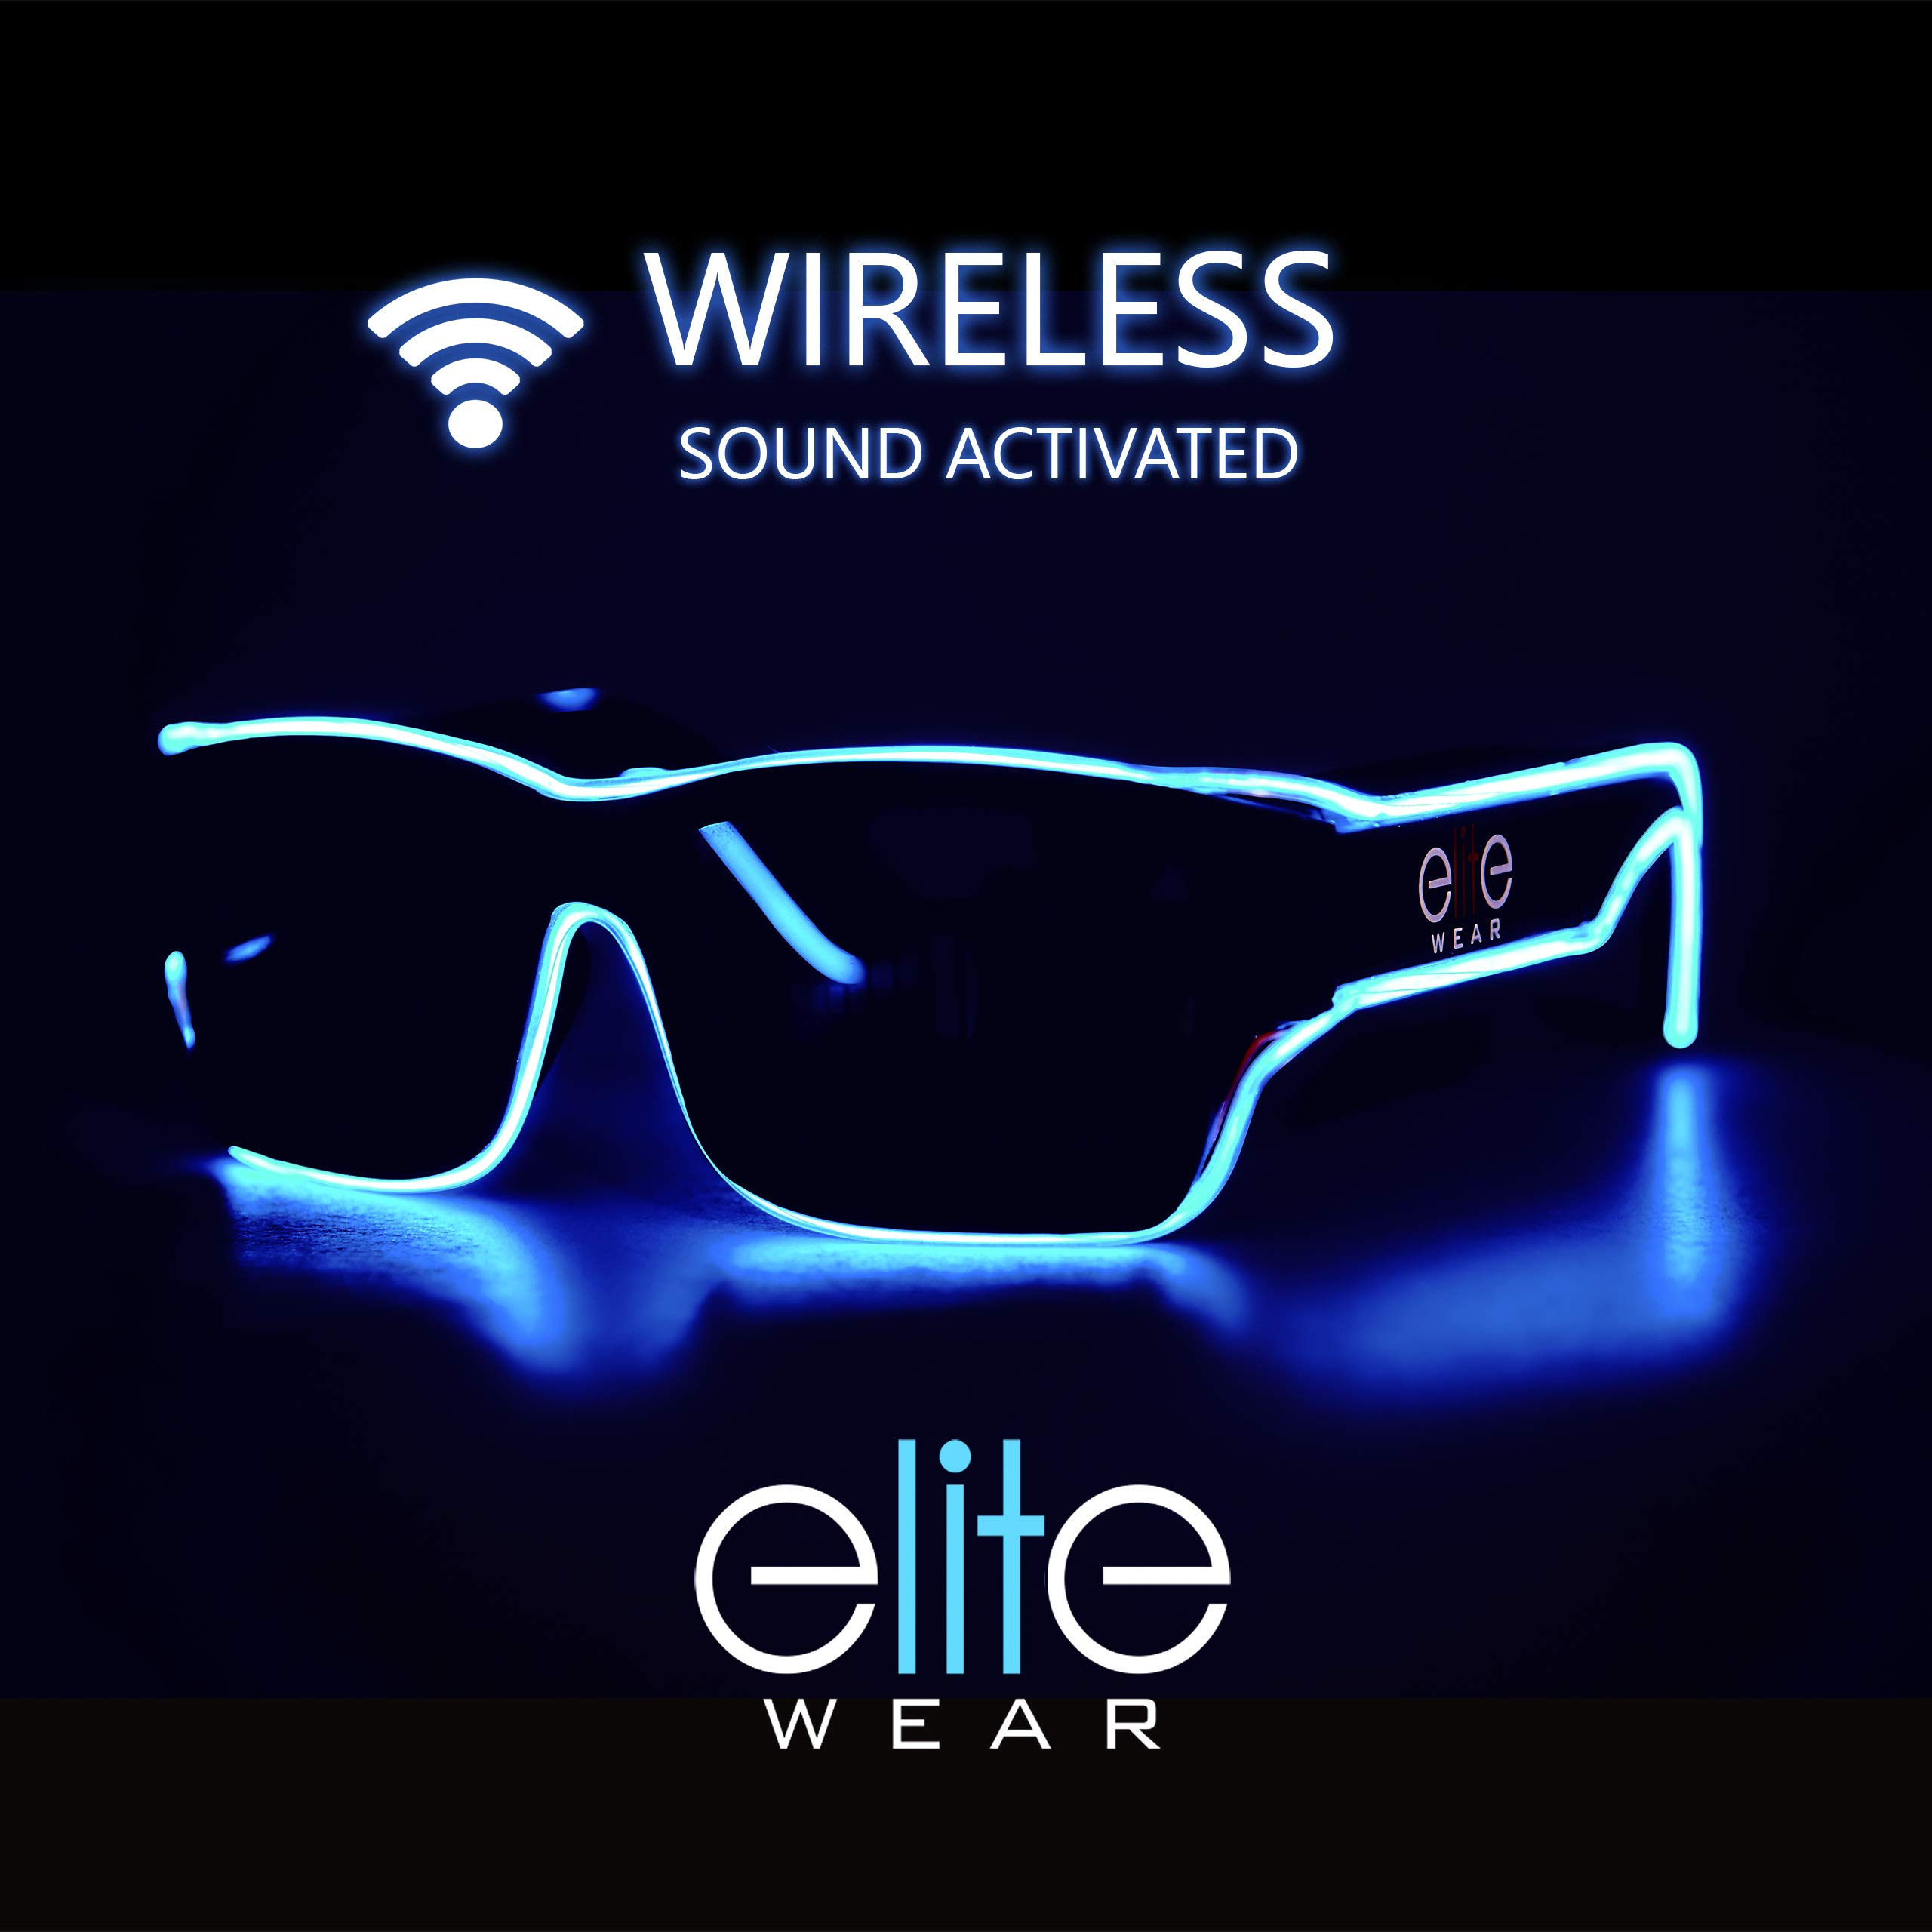 Elite Wear Wireless Sound Activated Rechargeable Electroluminescent Light Up Glasses (Aqua) by Elite Wear